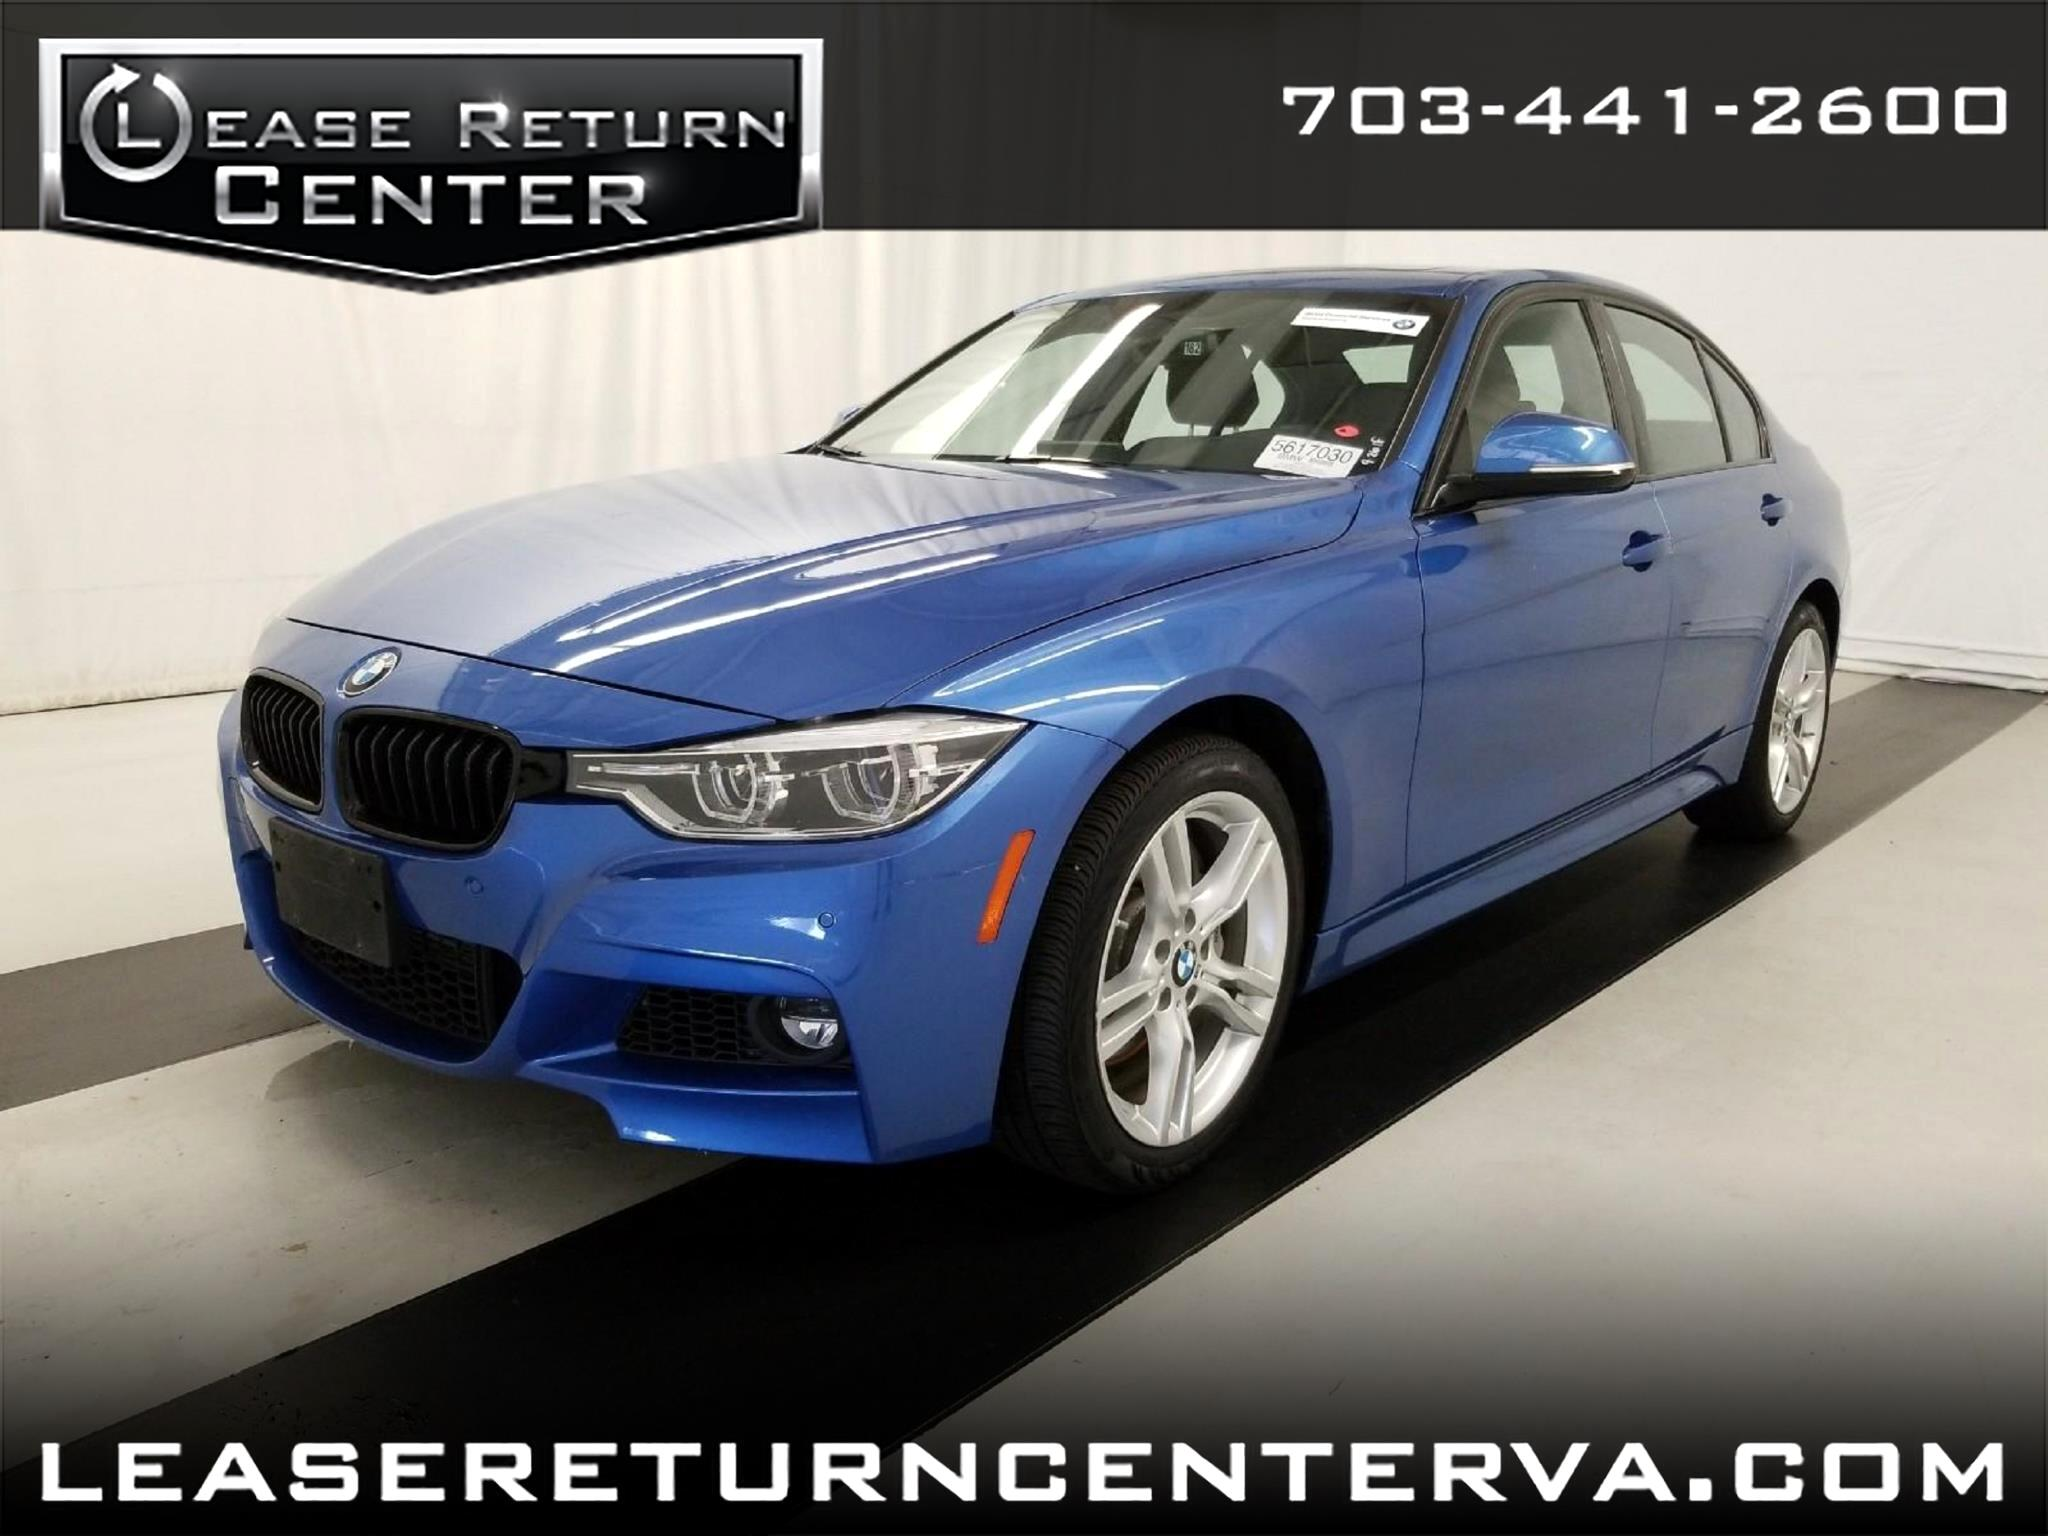 2016 BMW 3 Series xDrive M-Sport with Navigation System